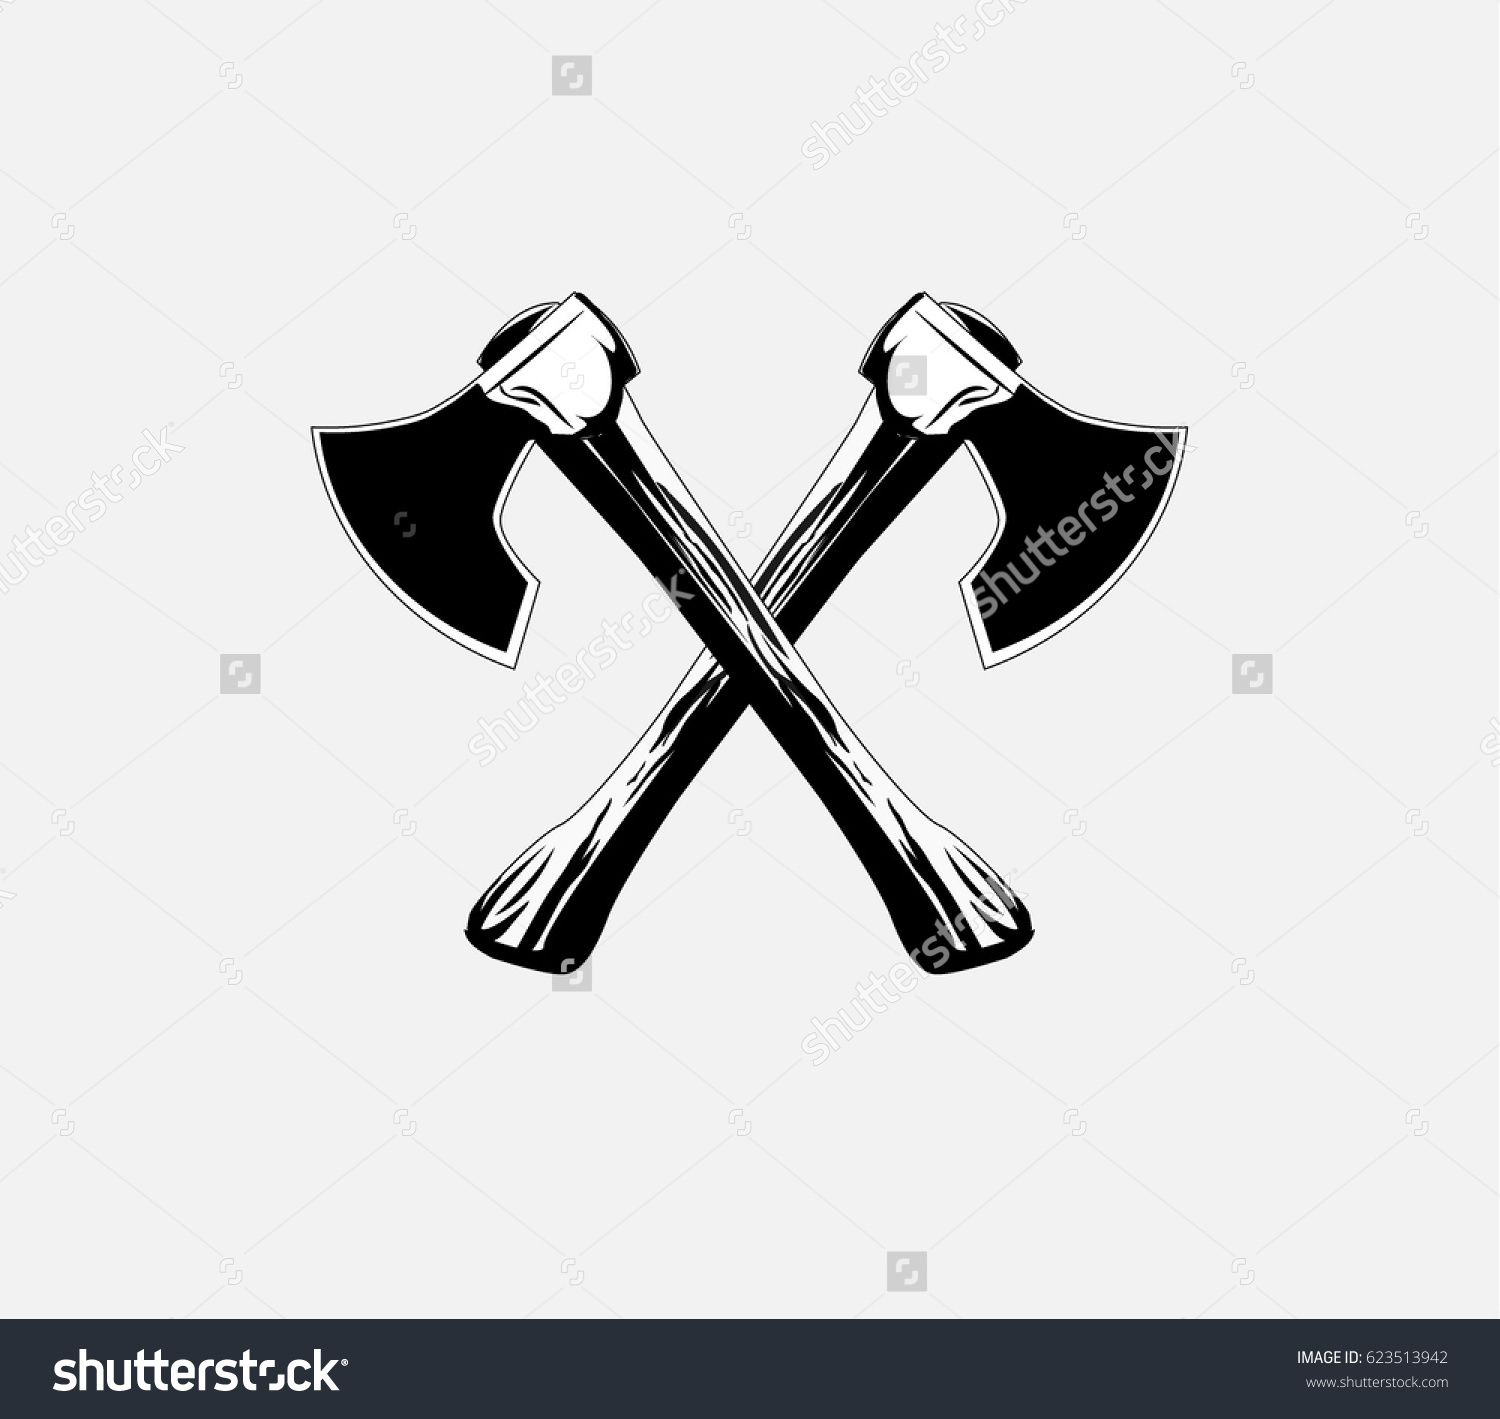 Lumberjack axes crossed axe icon vector illustration lumberjack lumberjack axes crossed axe icon vector illustration buy this stock vector on shutterstock find other images buycottarizona Choice Image